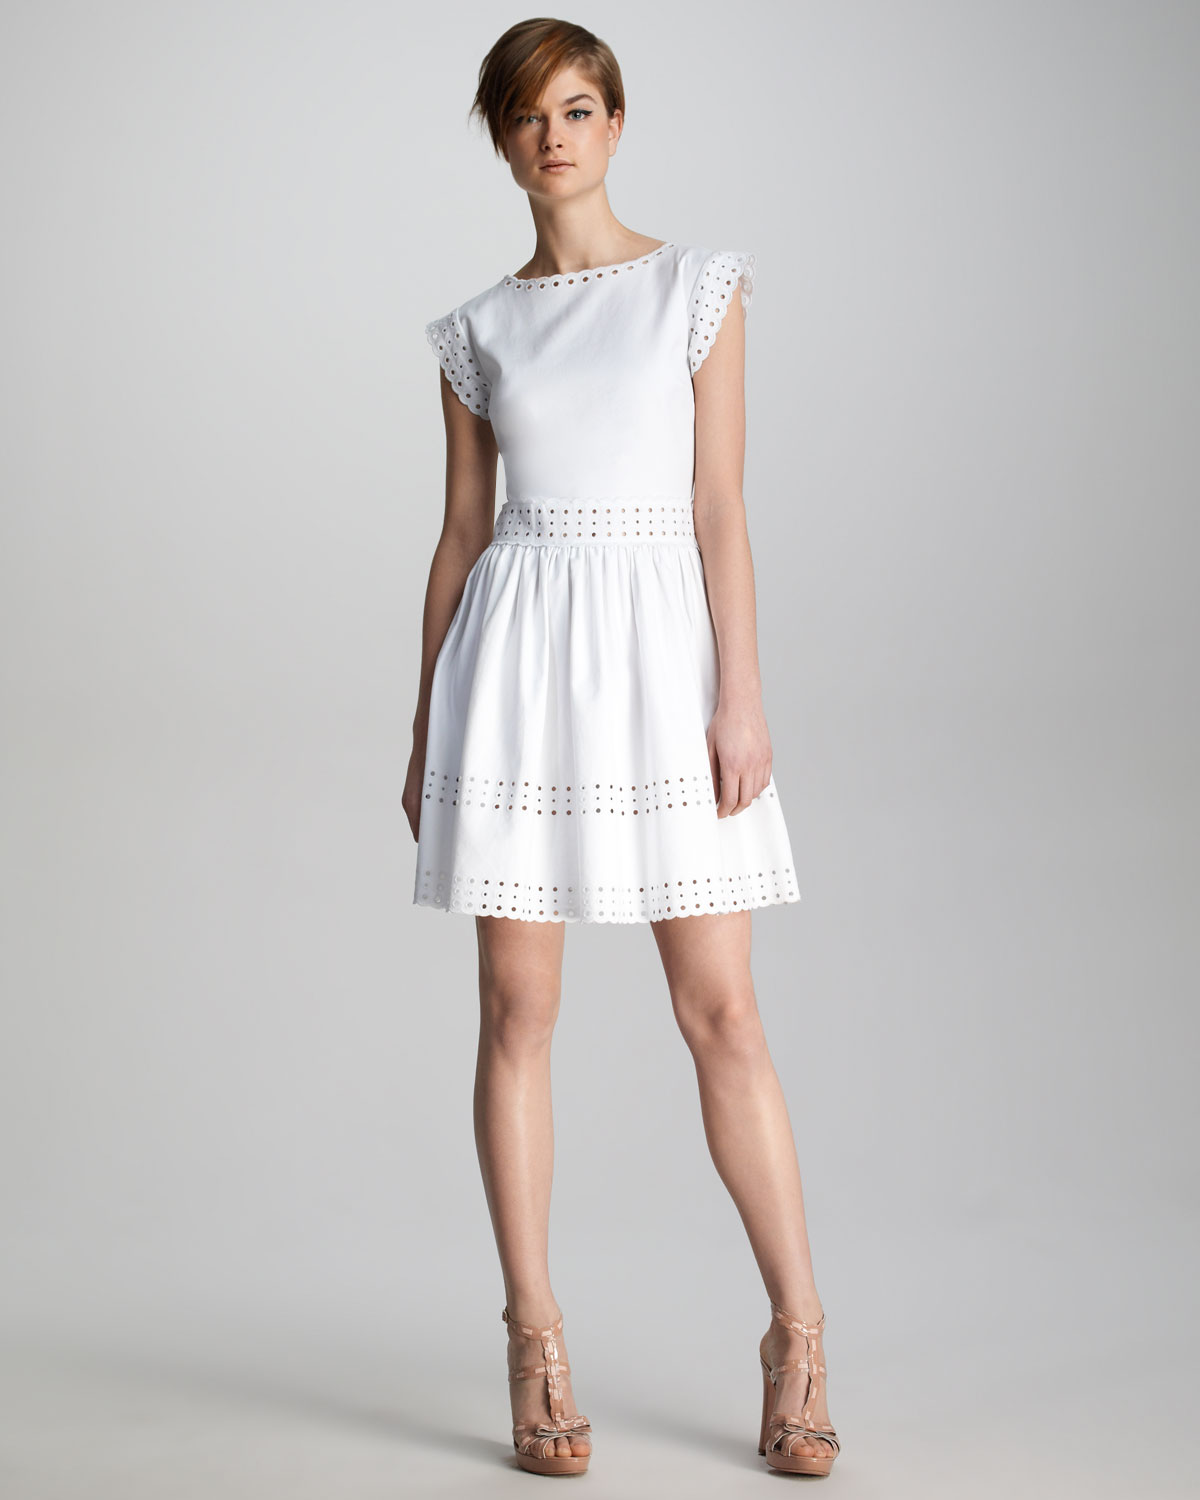 Lyst Red Valentino Pique Knit Sangallo Eyelet Dress In White